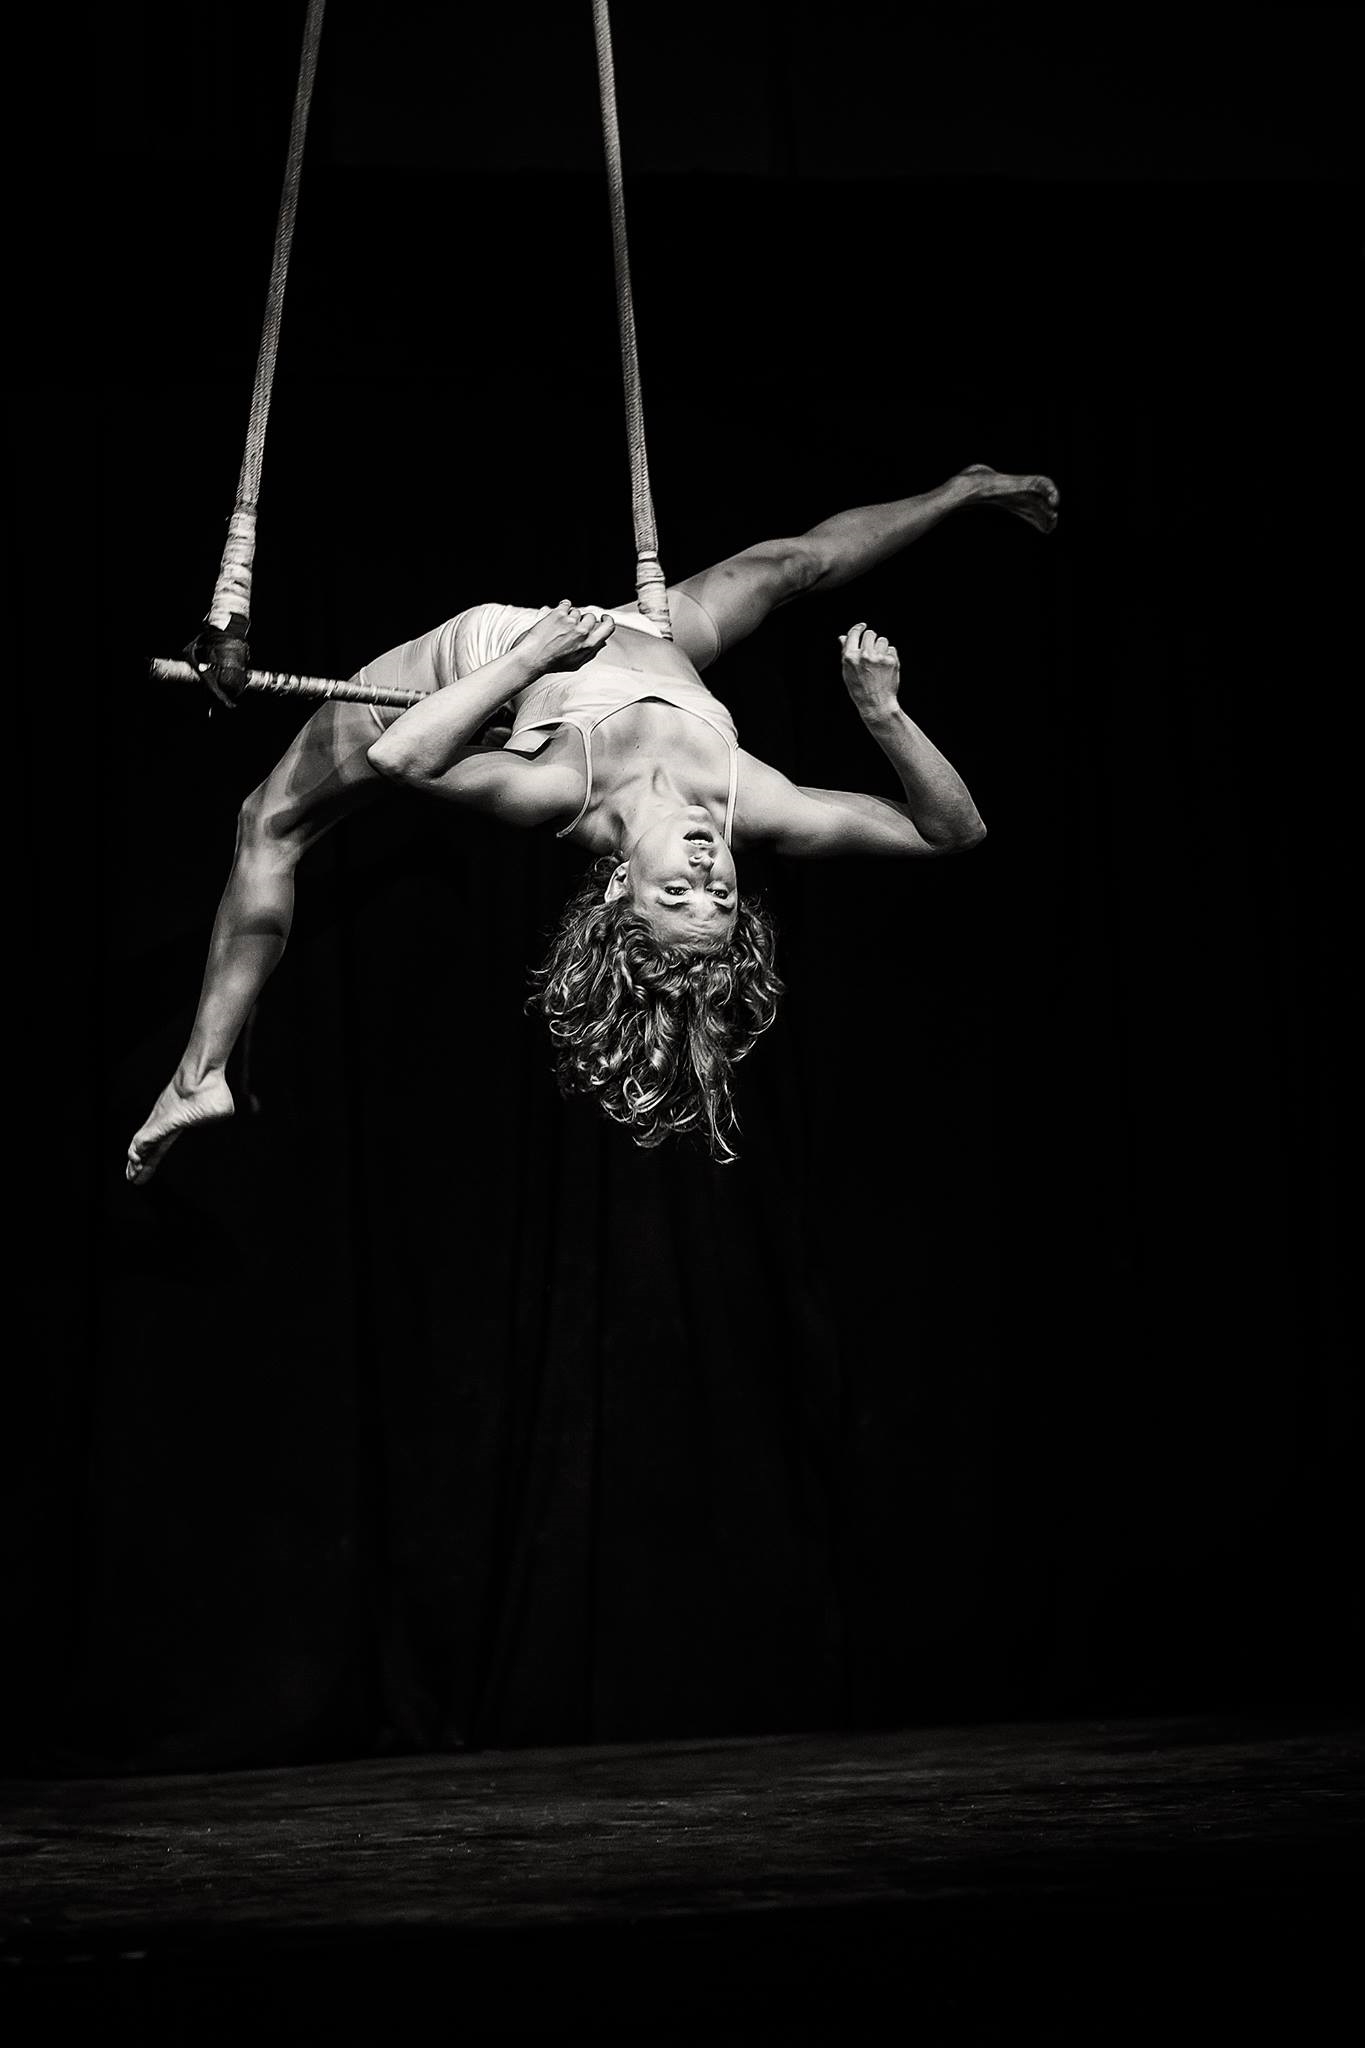 Shannon Gray | Buffalo Aerial Dance